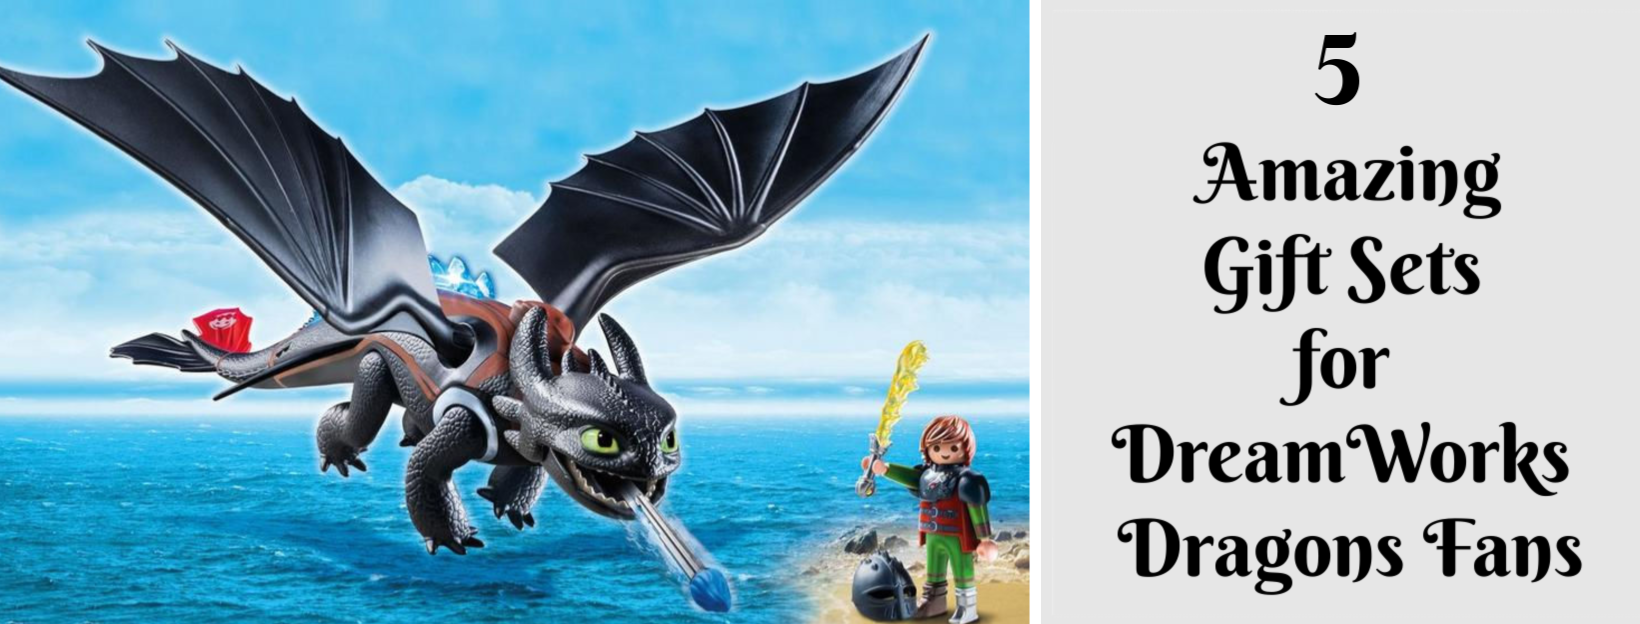 5 Amazing Gift Sets for DreamWorks Dragons Fans